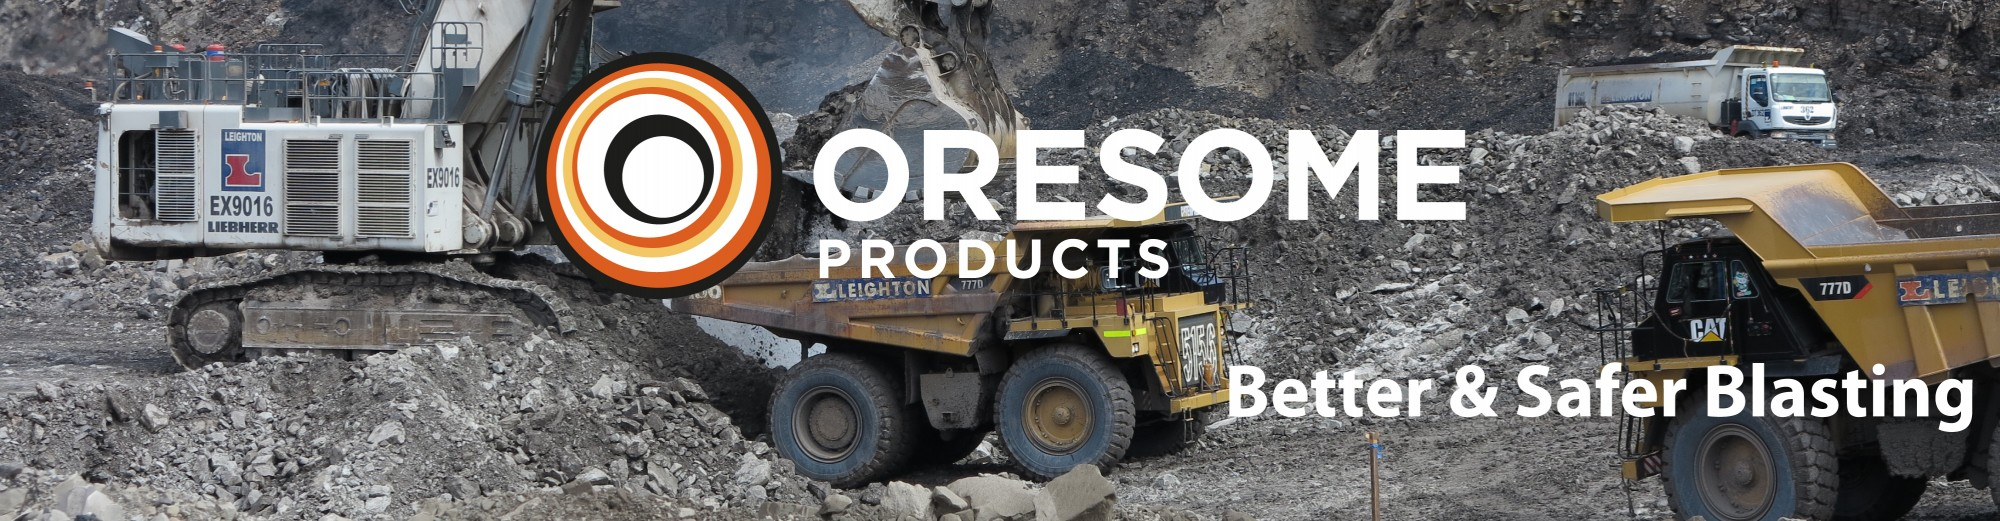 Oresome Products